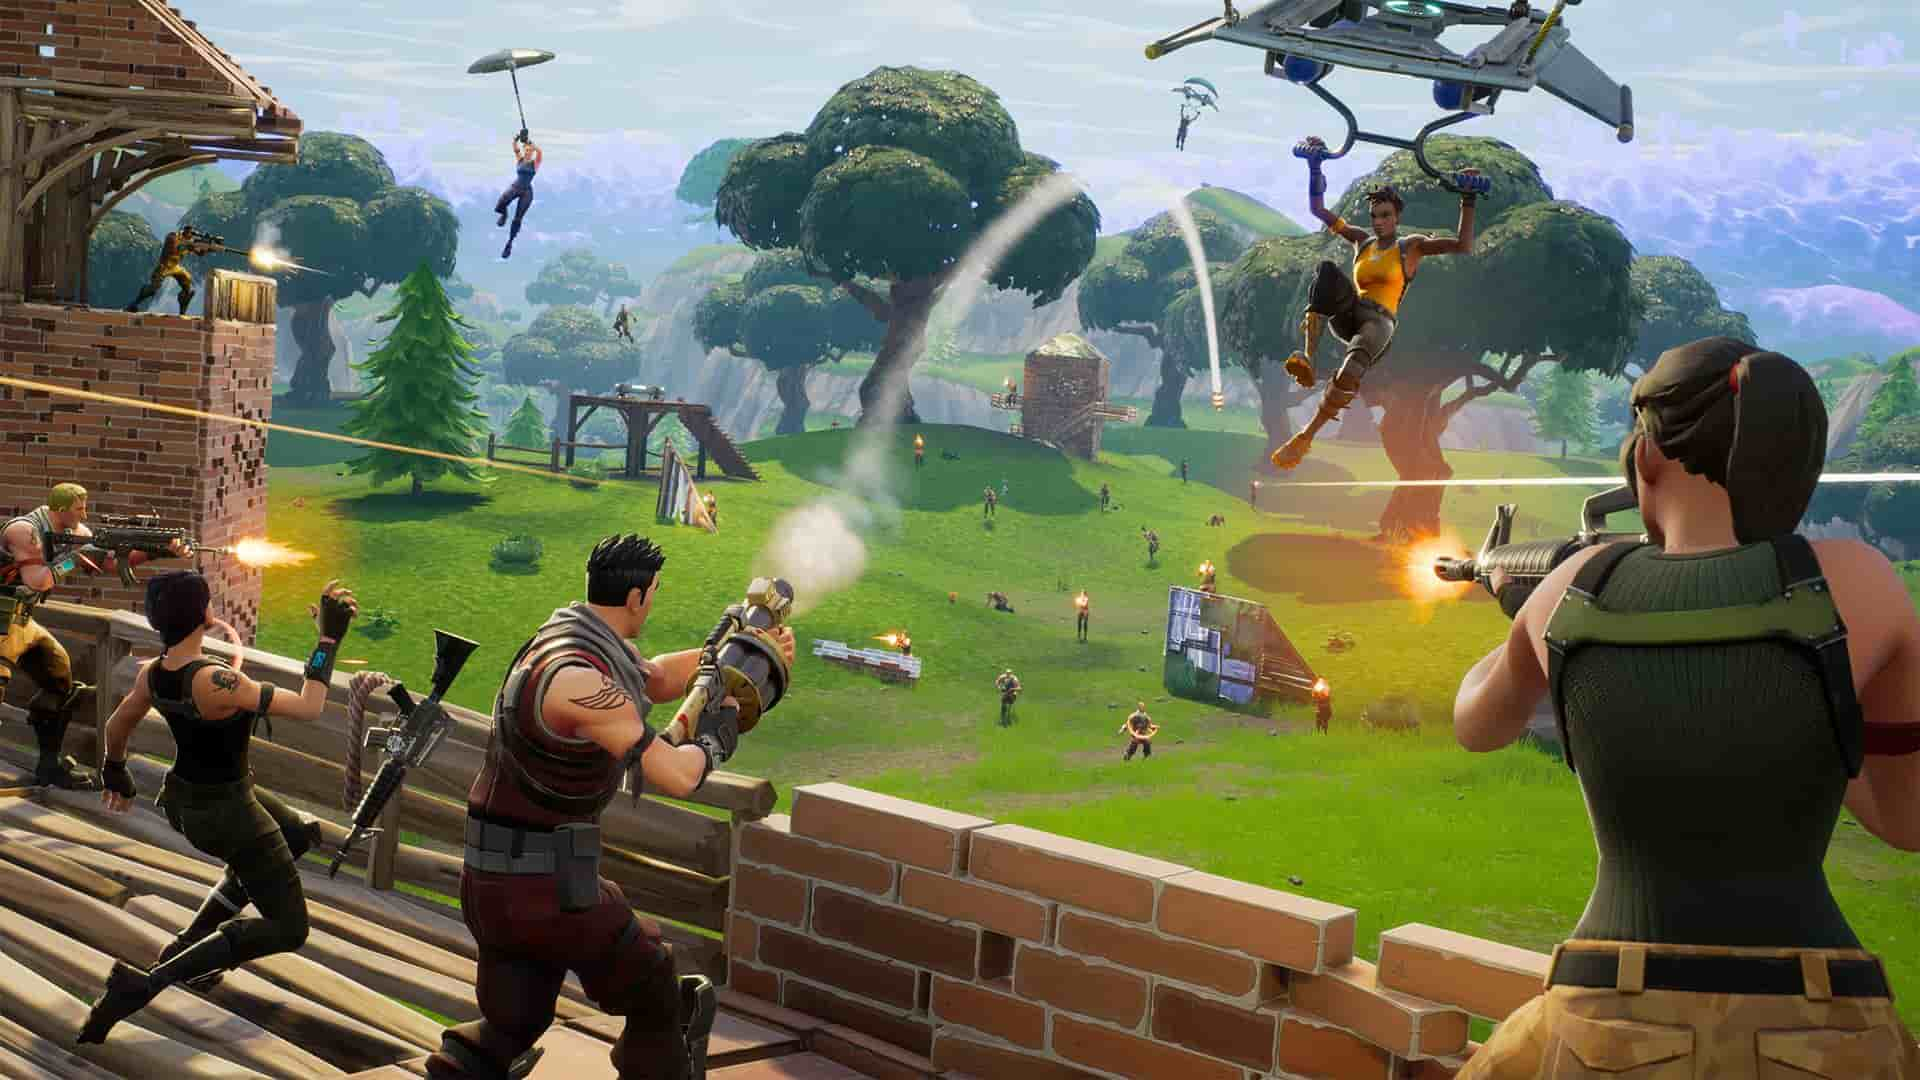 Legendary gold pump shotgun SPAS-12 lands in Fortnite 6.31 update